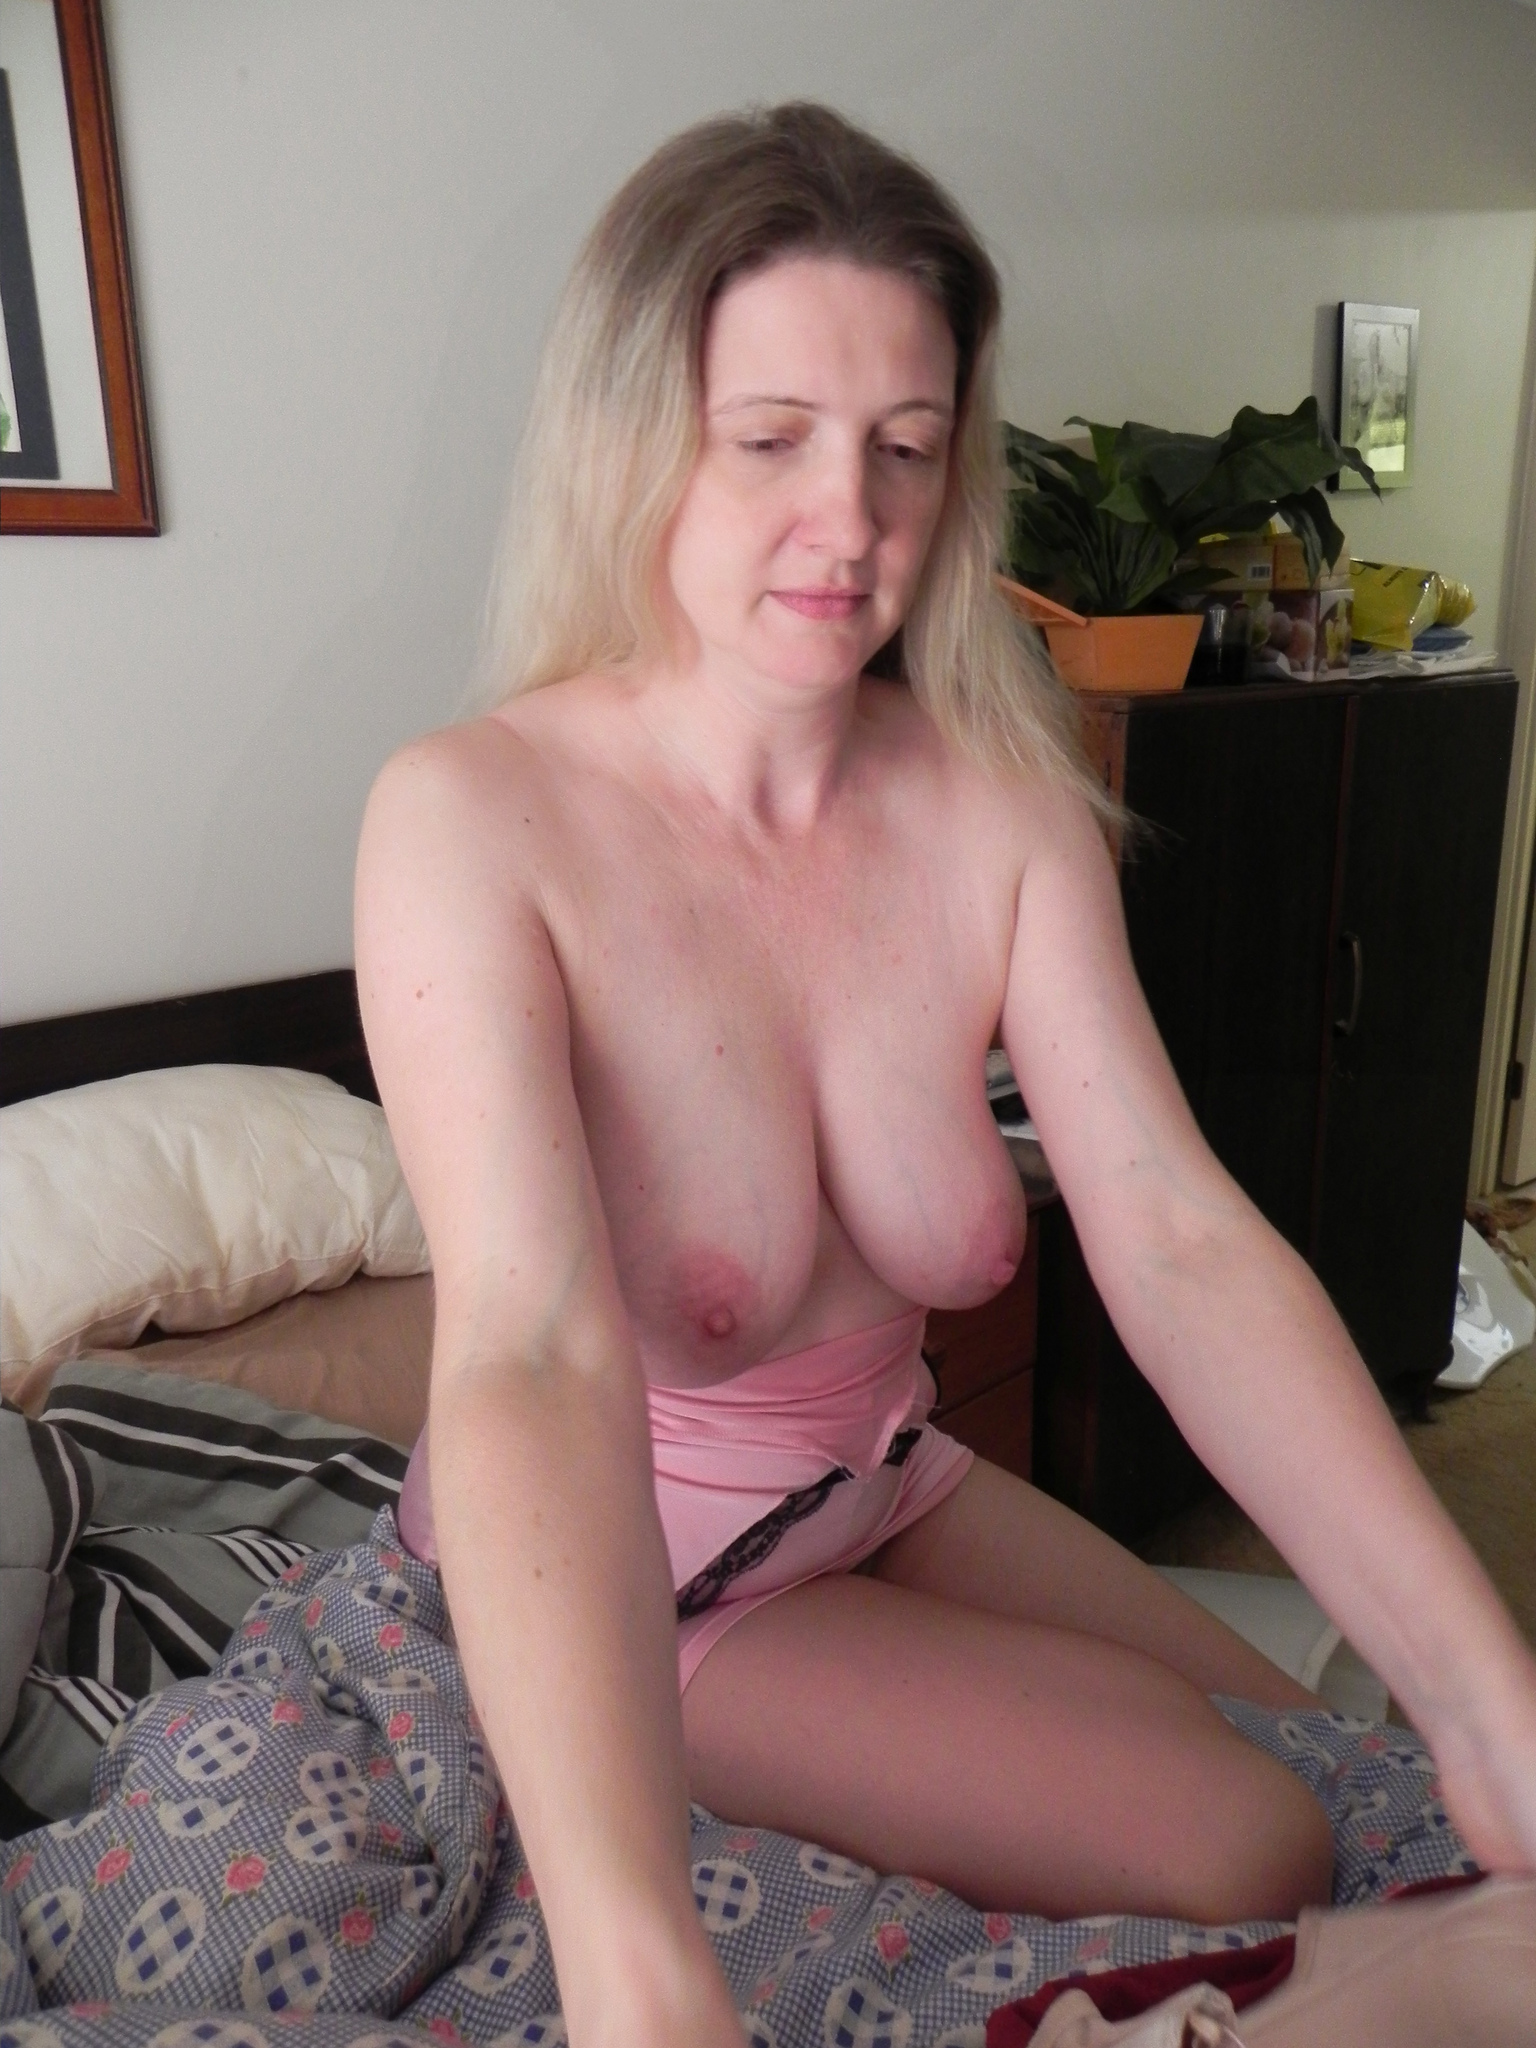 Amateur Porn Housewife amateur housewives with big natural tits   motherless ™